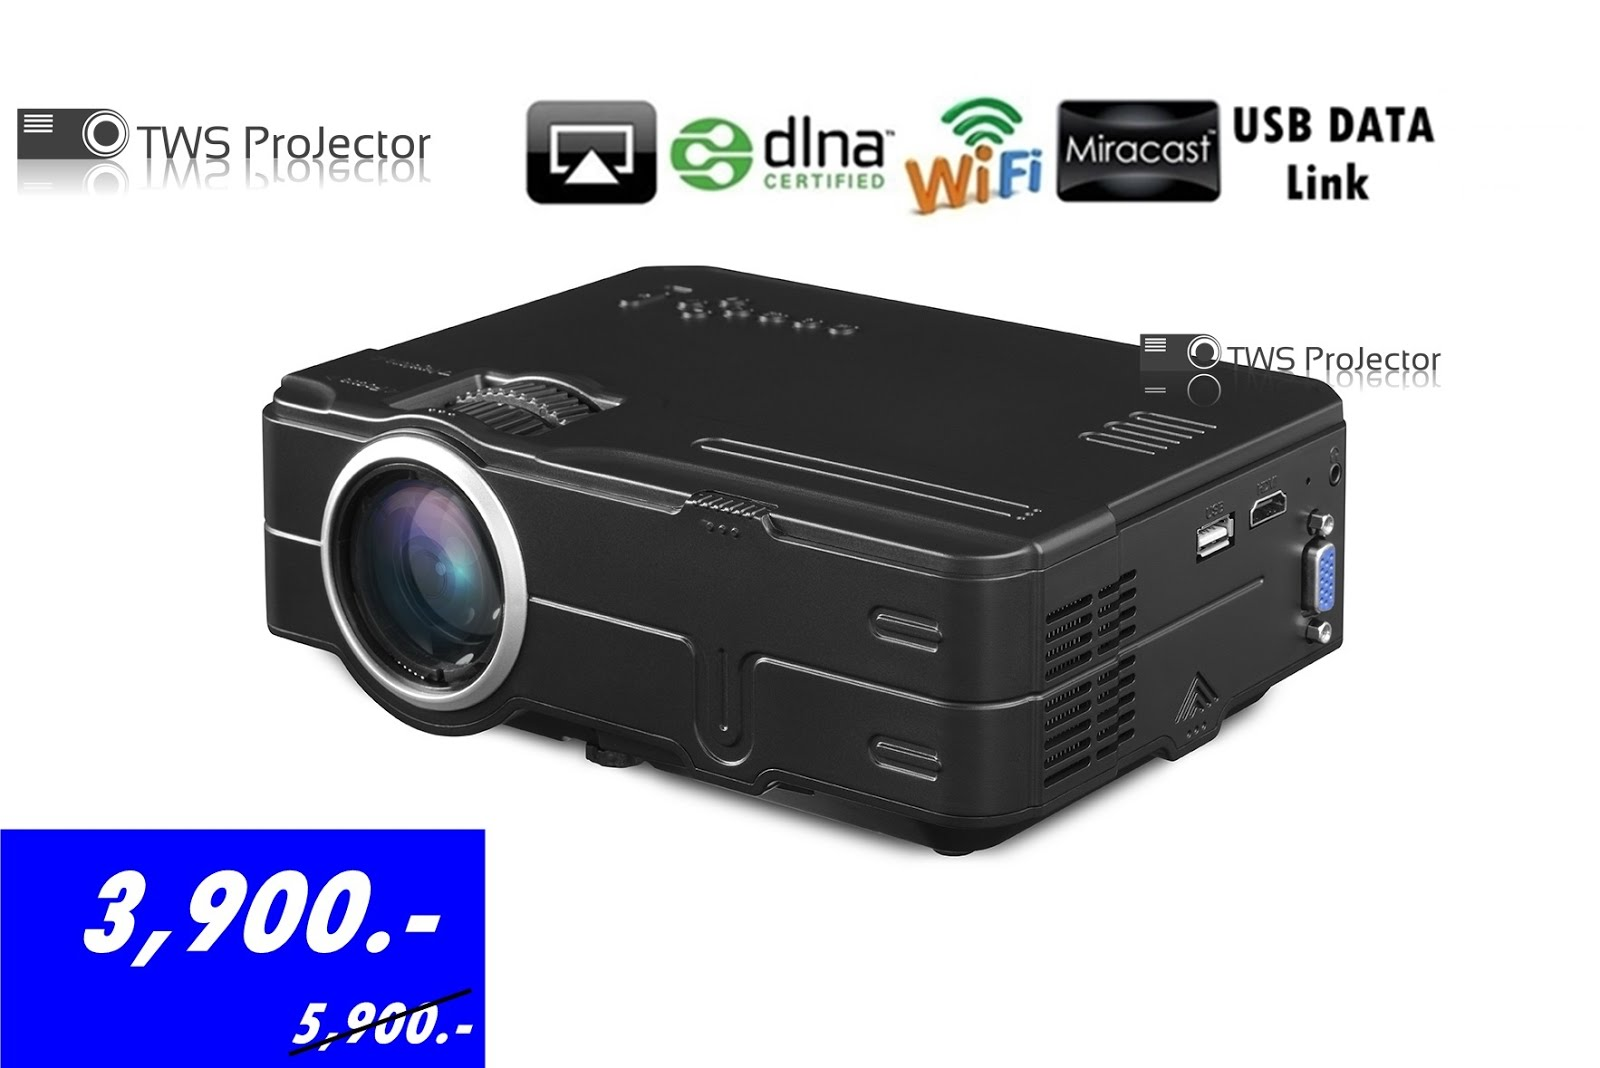 MINI PROJECTOR Ds812 Wifi and Usb Data Link (ALL IN ONE) 1500 Lumens  3,900 B